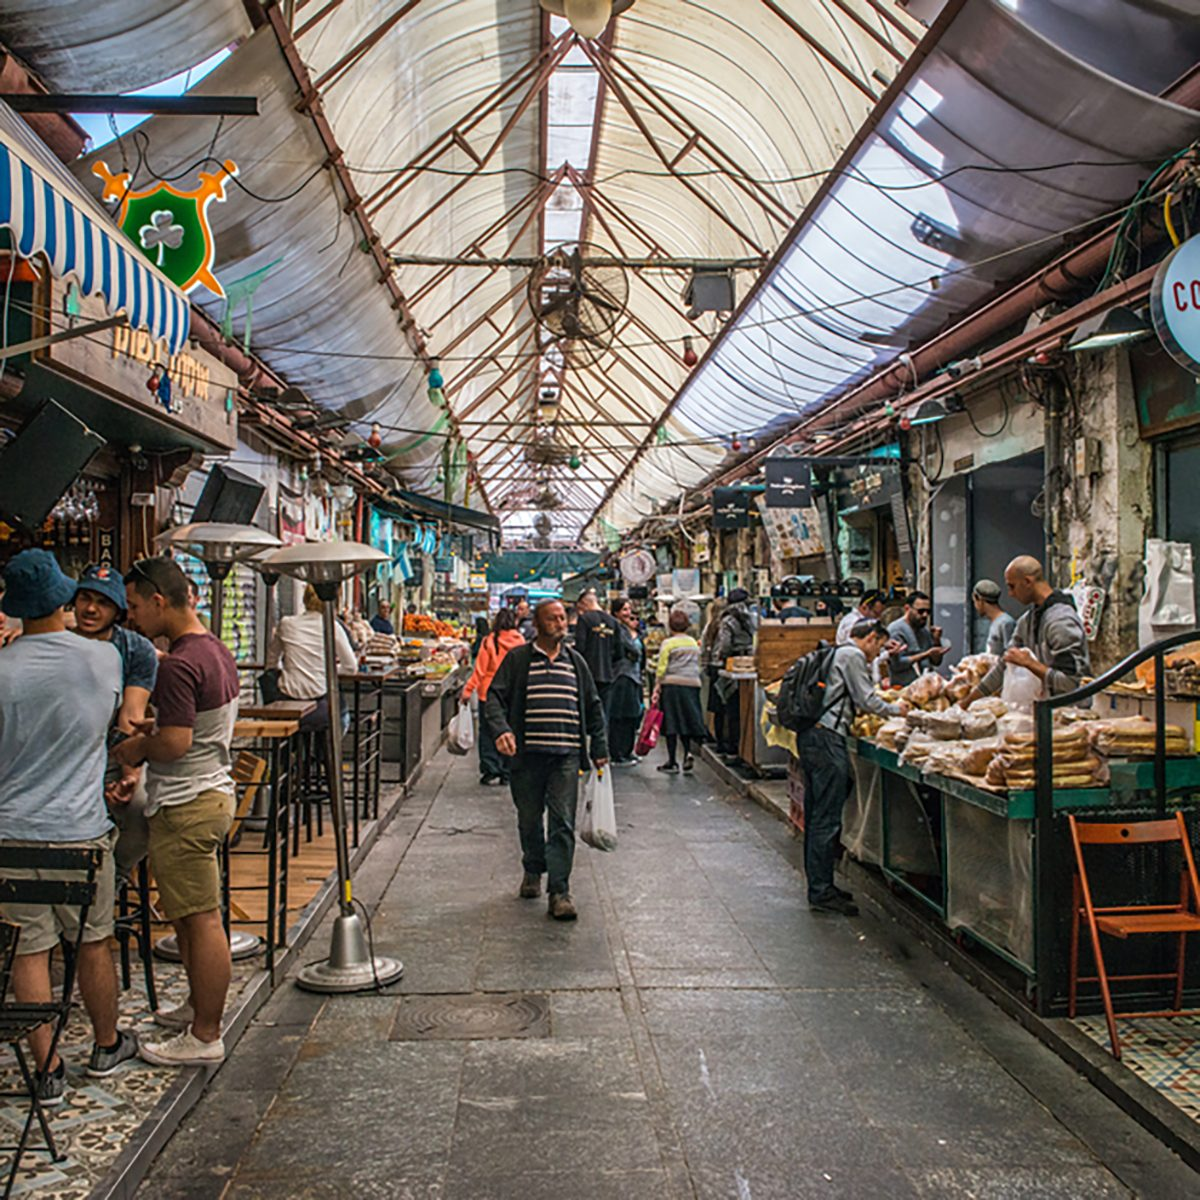 Mahane Yehuda Market is a marketplace in Jerusalem, Israel. Popular with locals and tourists alike, the market's more than 250 vendors